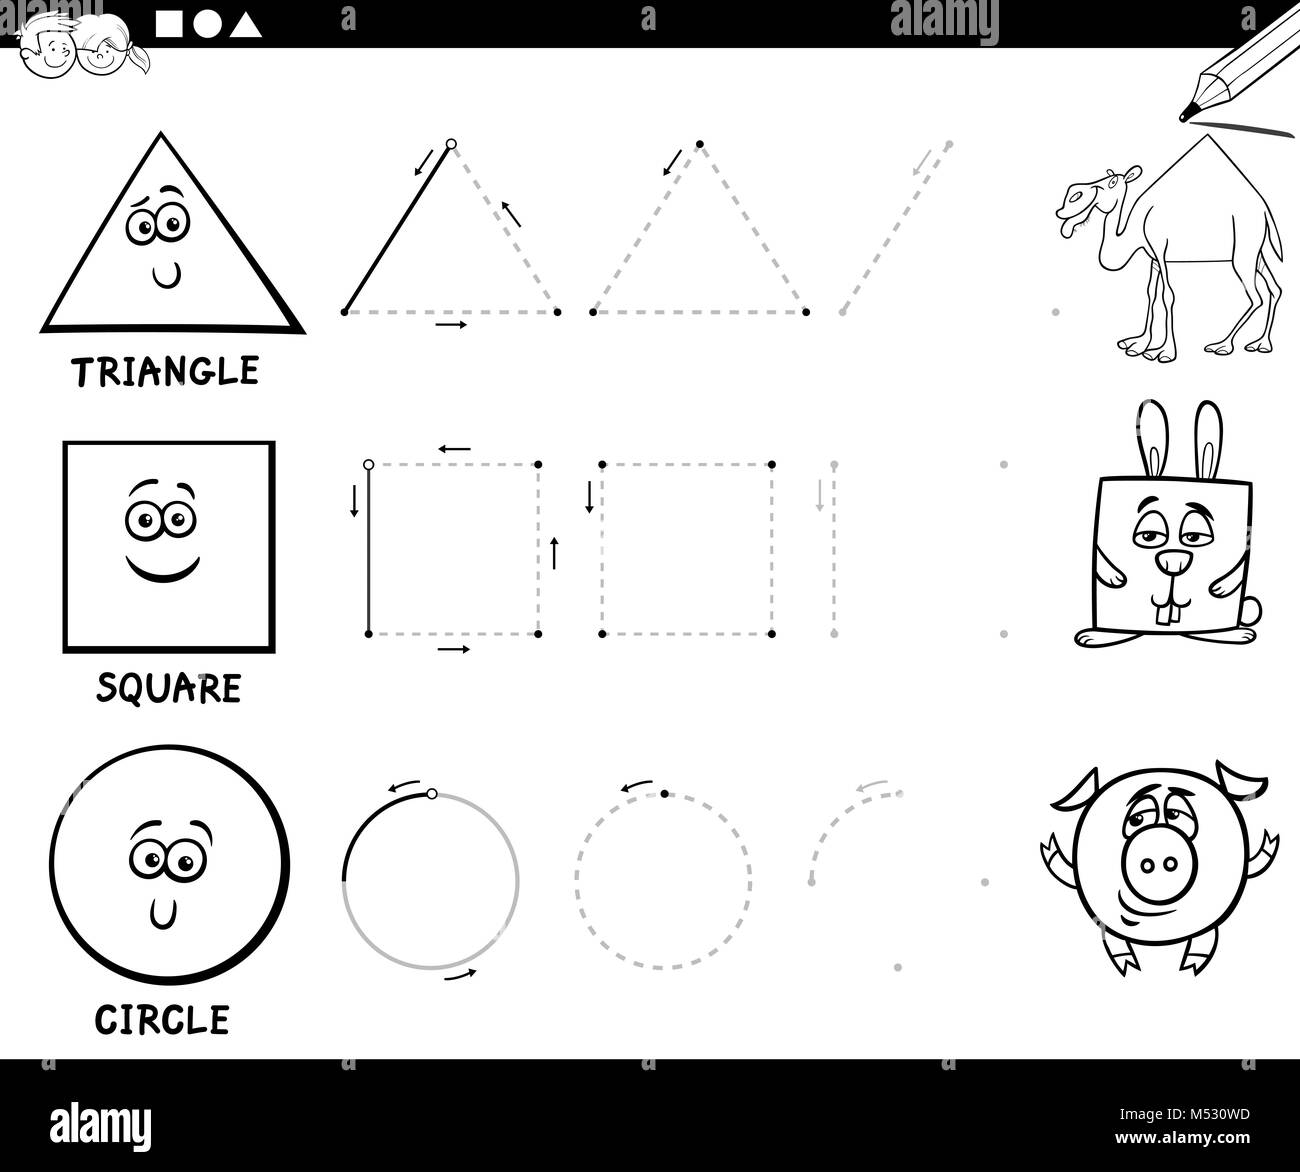 Draw Basic Geometric Shapes Coloring Page Stock Photo